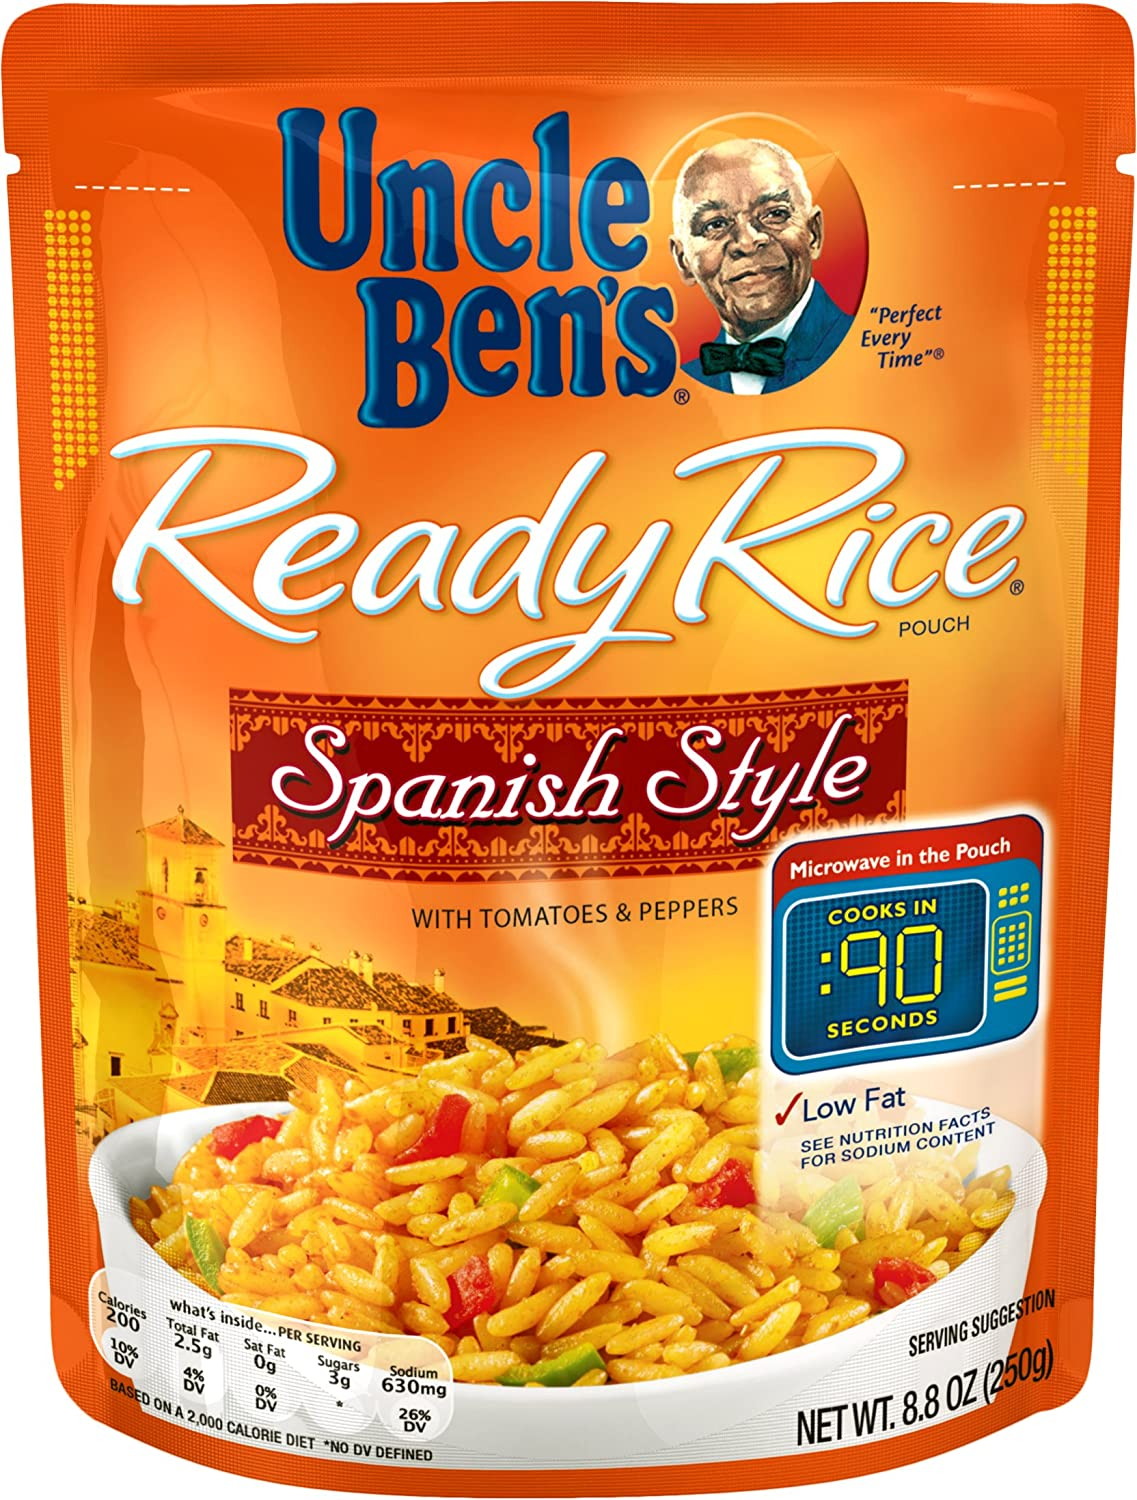 UNCLE BEN'S Ready Rice: Spanish Style (12pk)